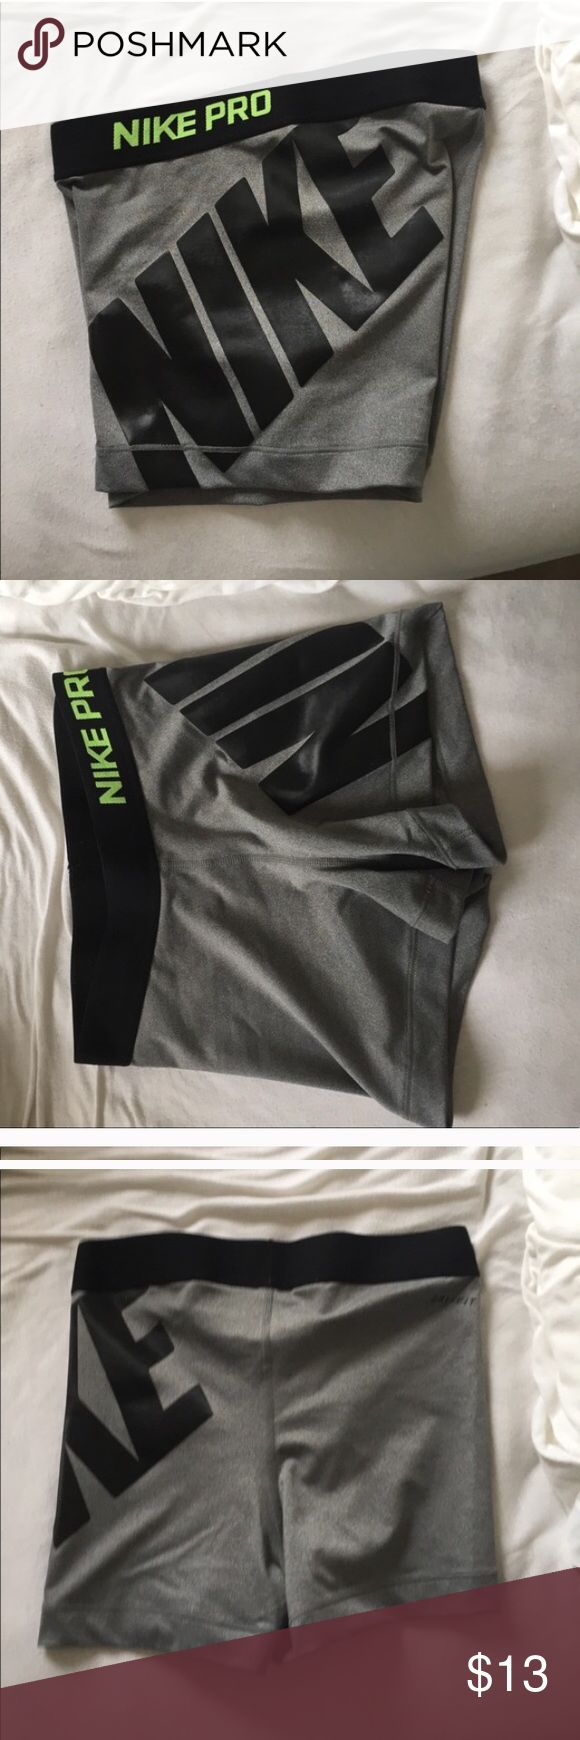 Nike compression shorts Great condition, too small for me! Nike Shorts